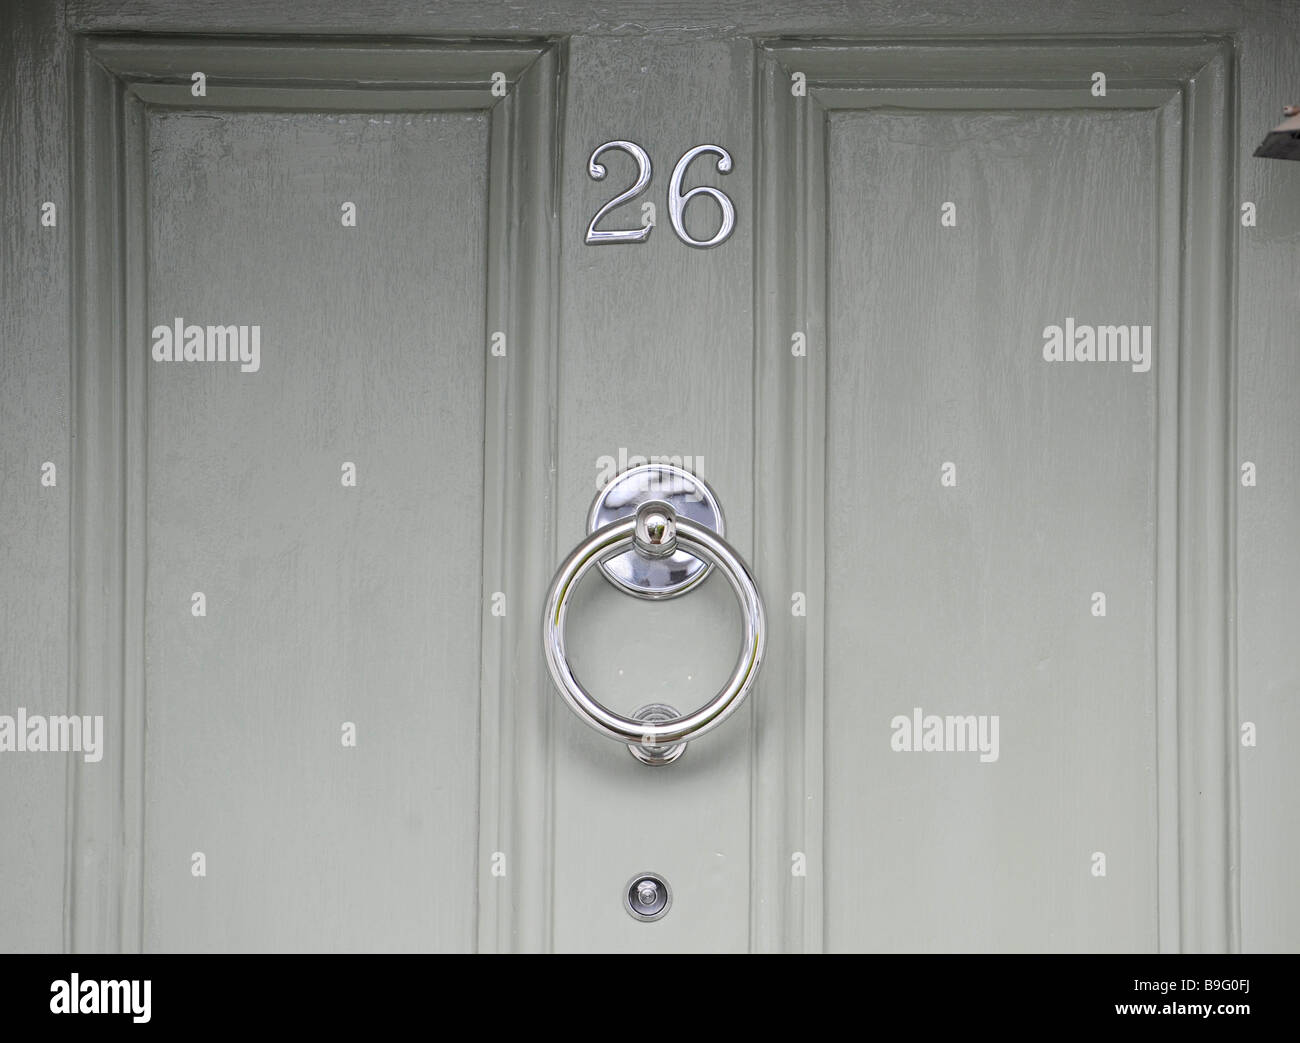 Attirant The House Number 26, A Peep Hole And A Door Knocker On The Painted Door